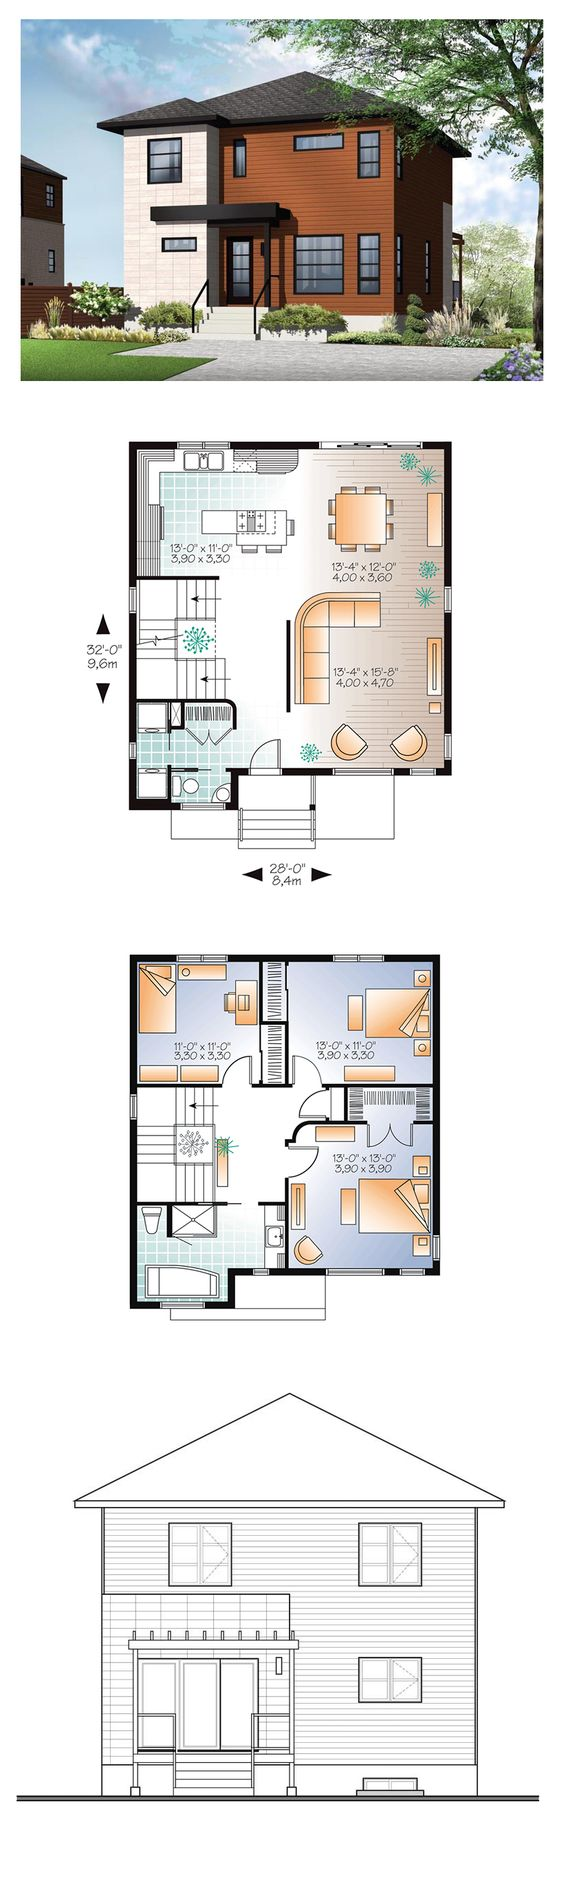 Modern House Plan 76366 | Total Living Area: 1670 sq. ft., 3 bedrooms  1.5 bathrooms. This contemporary style home presents clean and pleasing lines finished in wood and architectural block. The interior is consistent with the modern style and boasts an open concept with ample light. #houseplan #modernhome